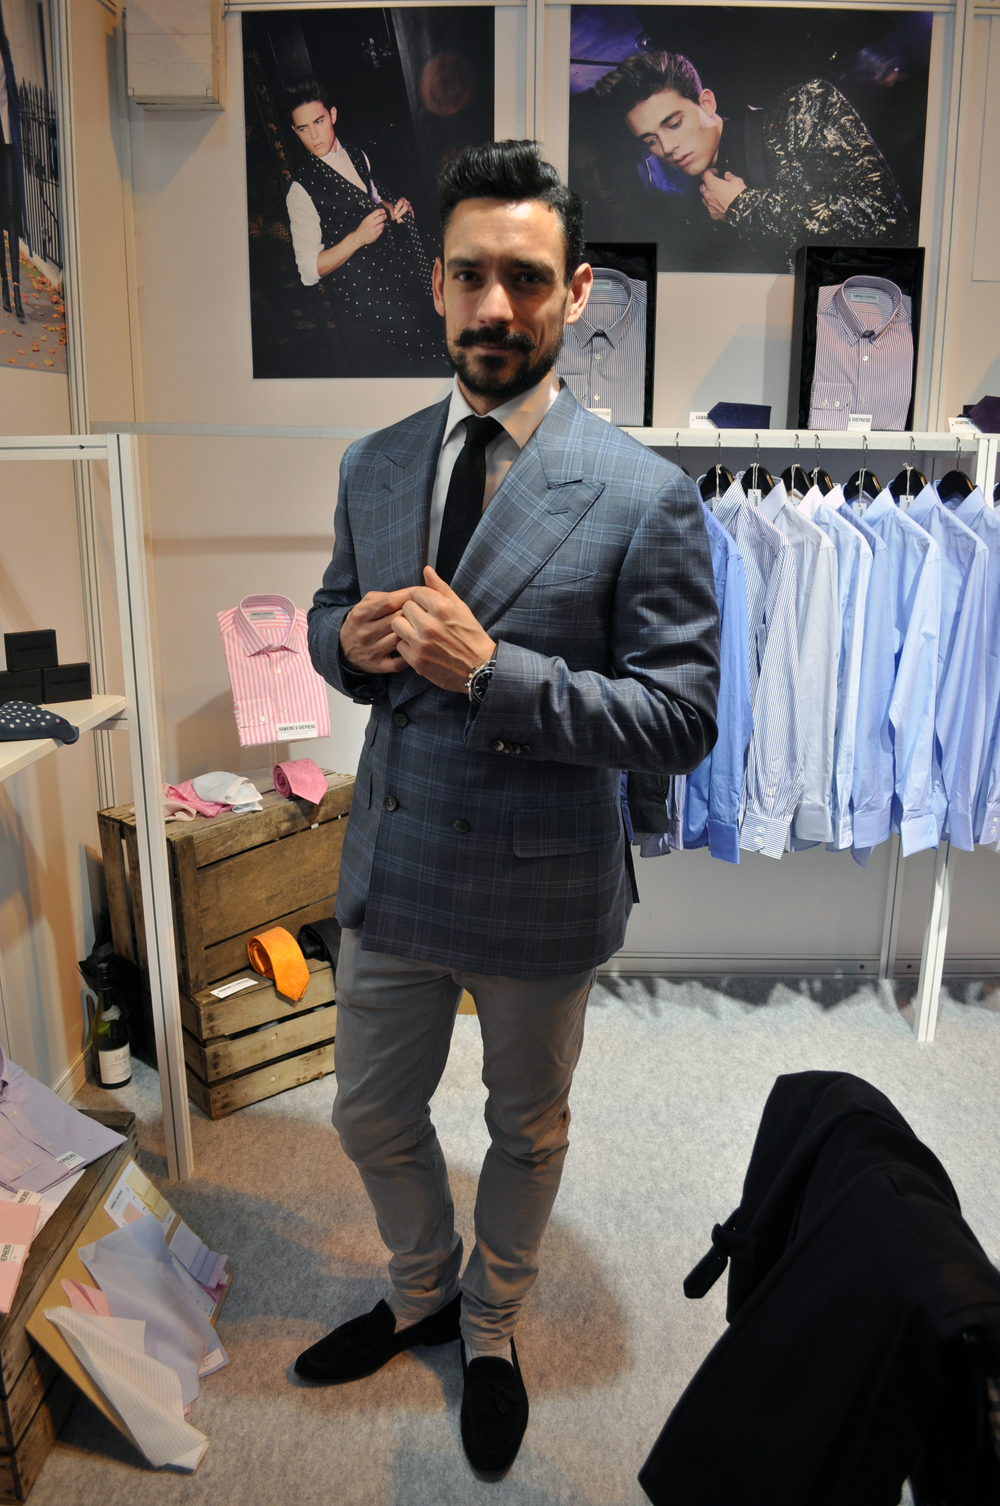 Me at the Hawkins & Shepherd stand at MODA wearing Canali double-breasted suit jacket.